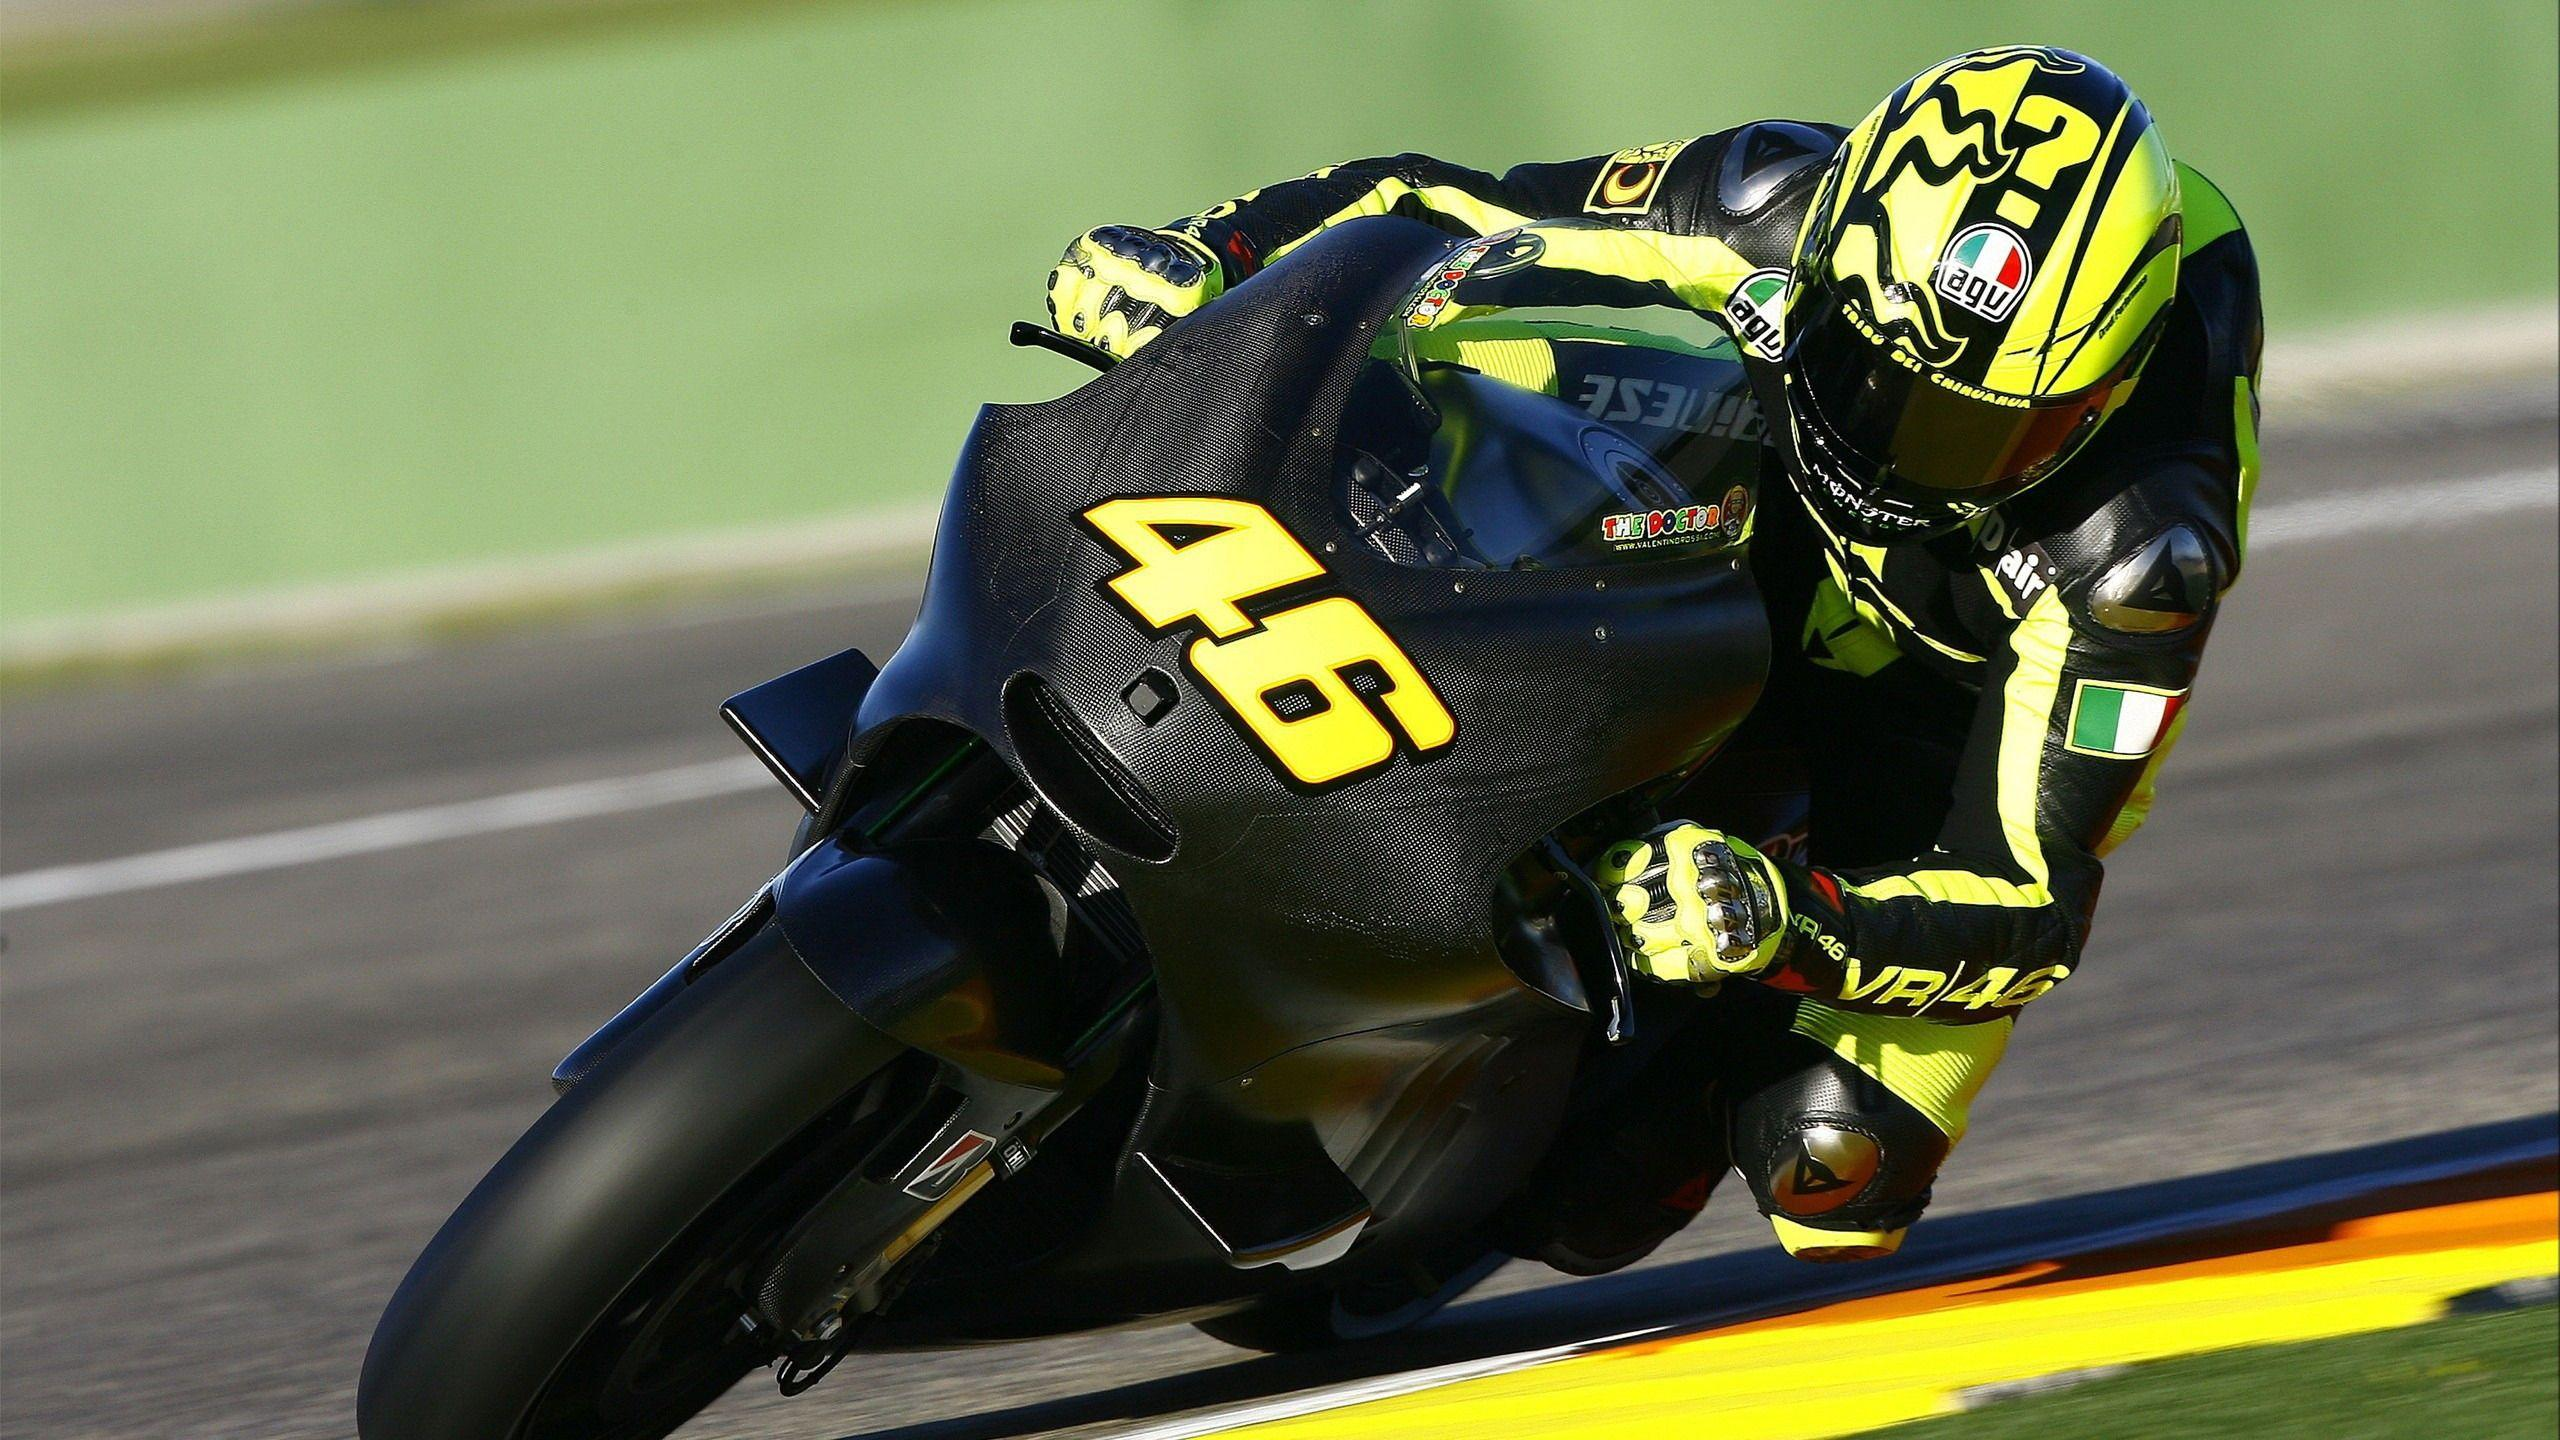 Wallpapers Rider, Motorcycle, Motogp, Valentino rossi, 2014 HD